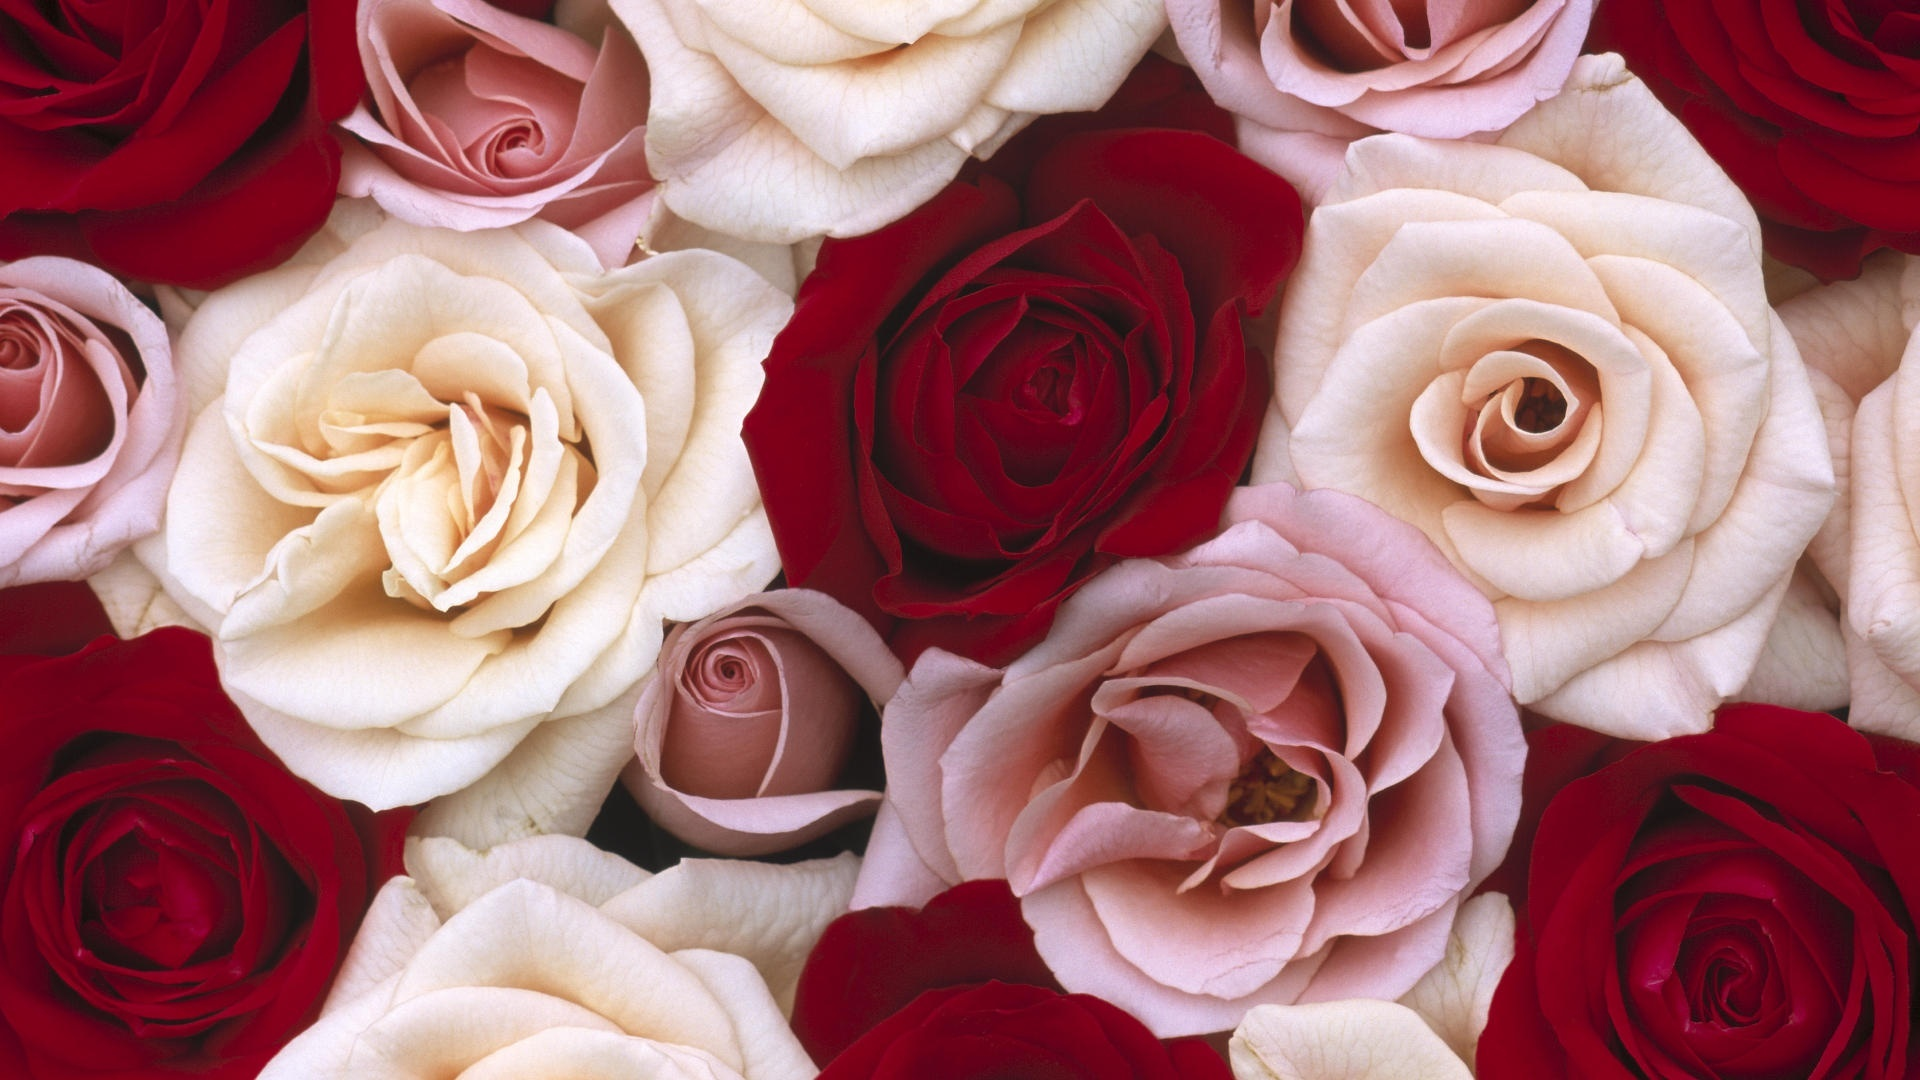 red and white rose wallpaper - photo #17